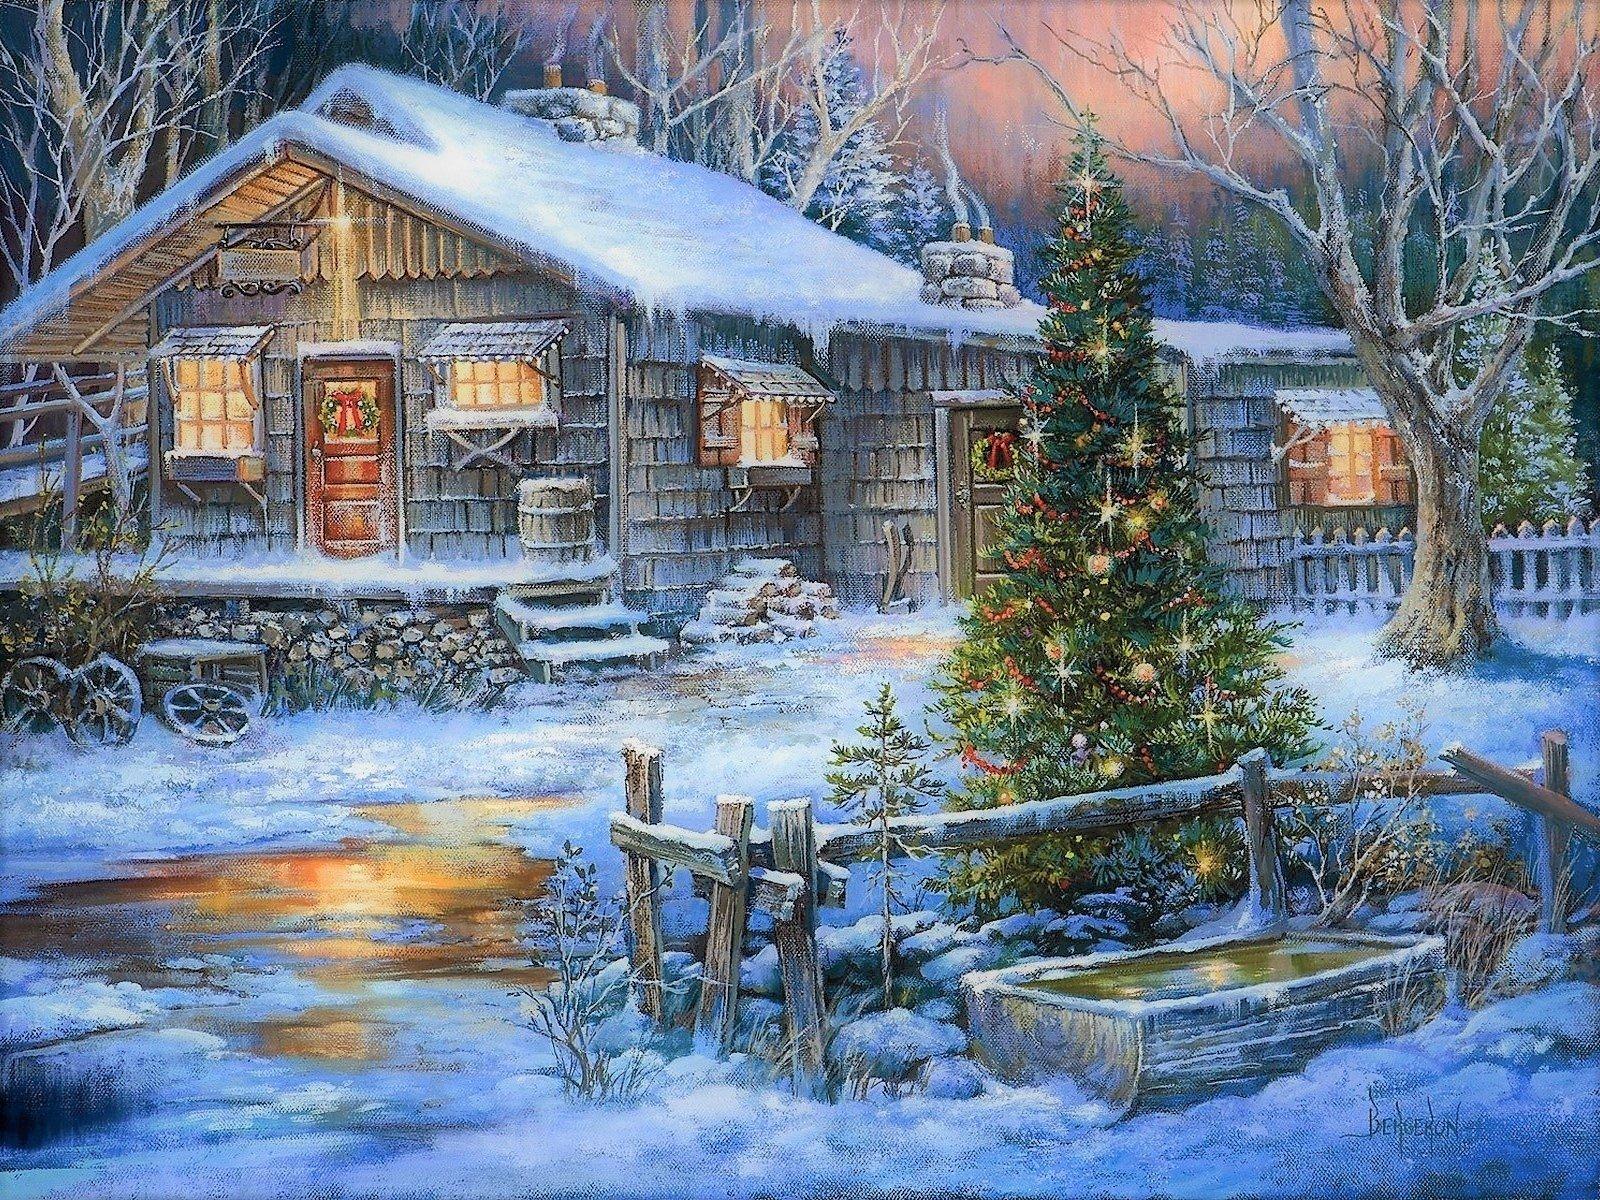 Country Christmas Background.A Country Christmas Wallpaper And Background Image